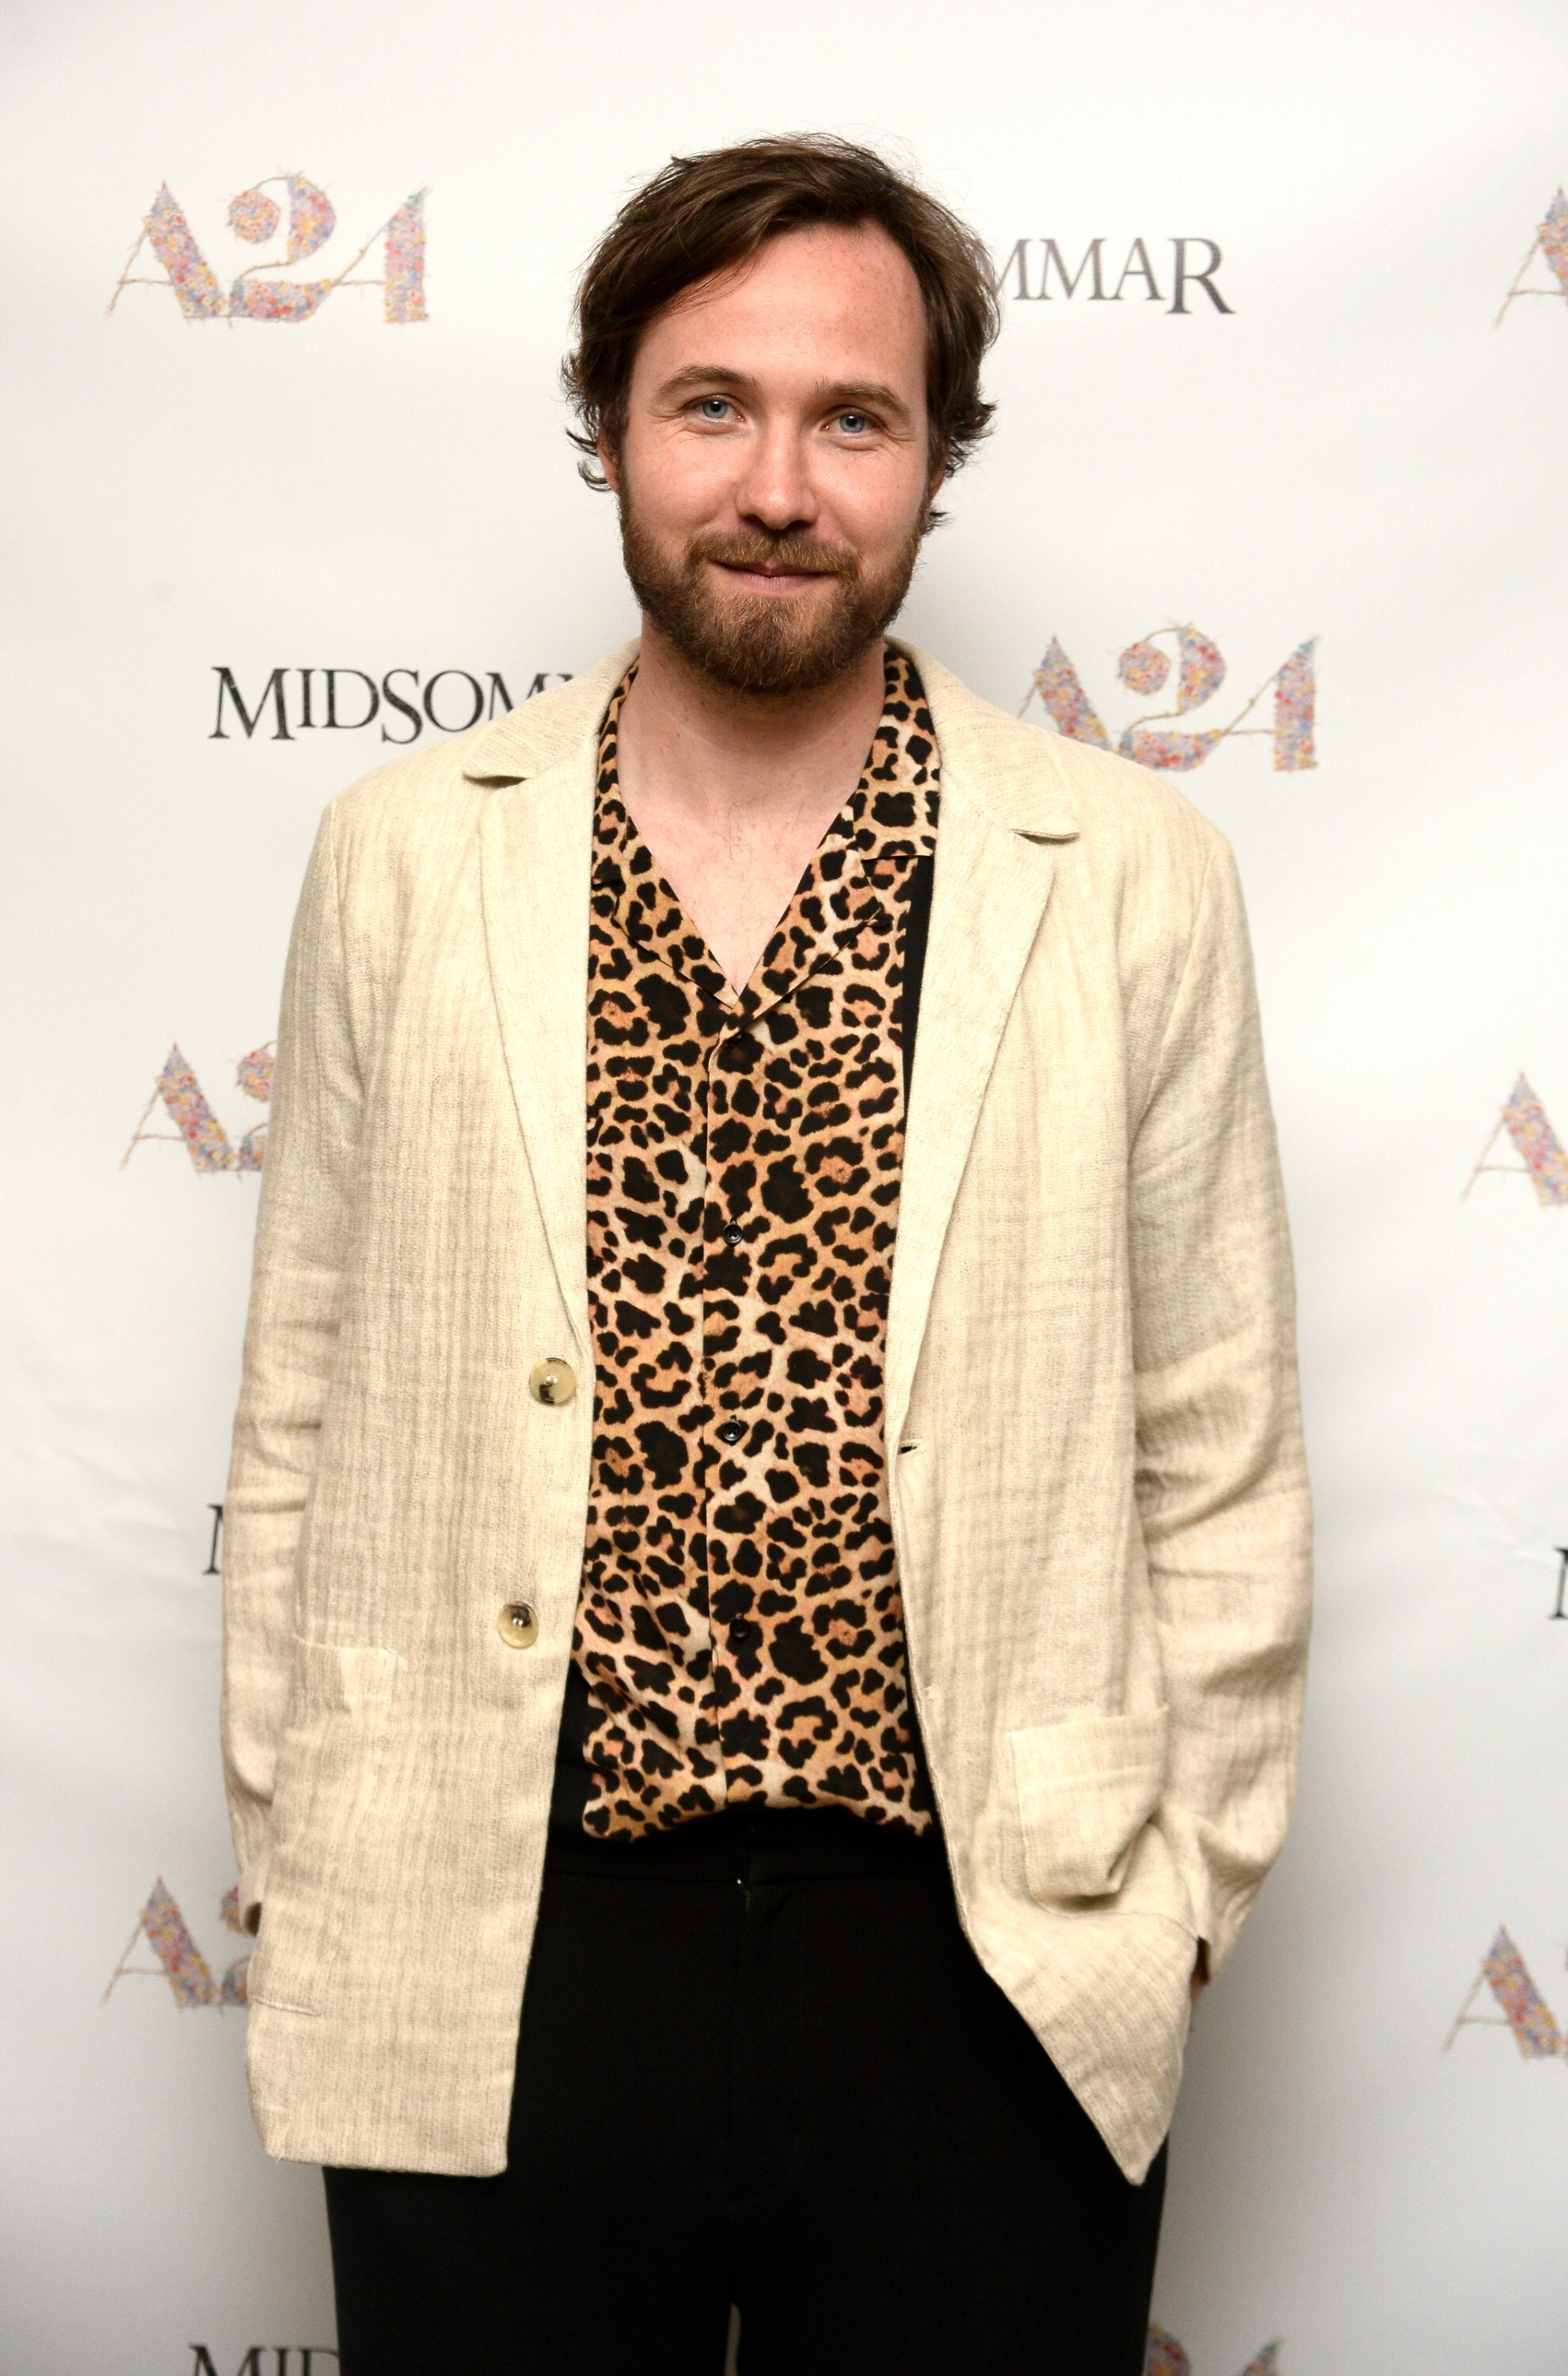 Vilhelm Blomgren in leopard-print button-down shirt and light-colored linen jacket and dark pants standing at a step-and-repeat for a viewing of A24's Midsommar, lightly smiling at camera